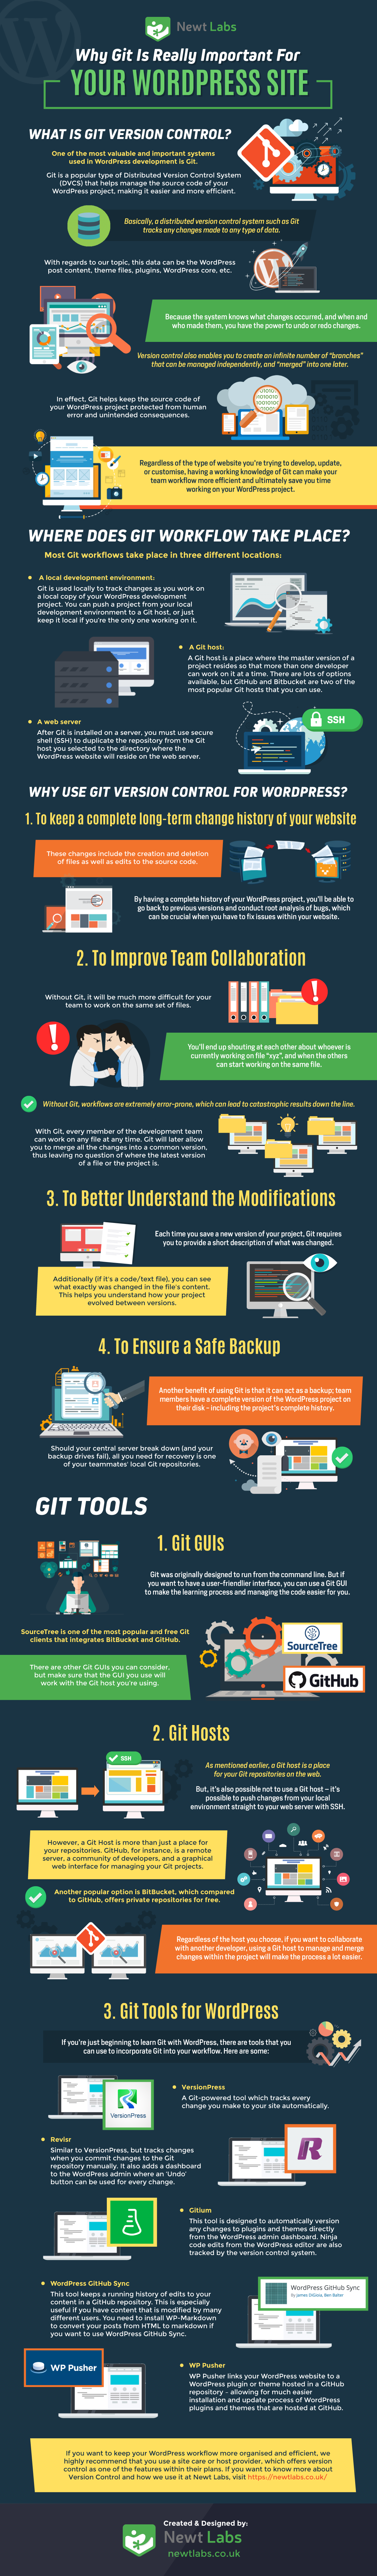 Why Git Is Really Important For Your WordPress Site Infographic